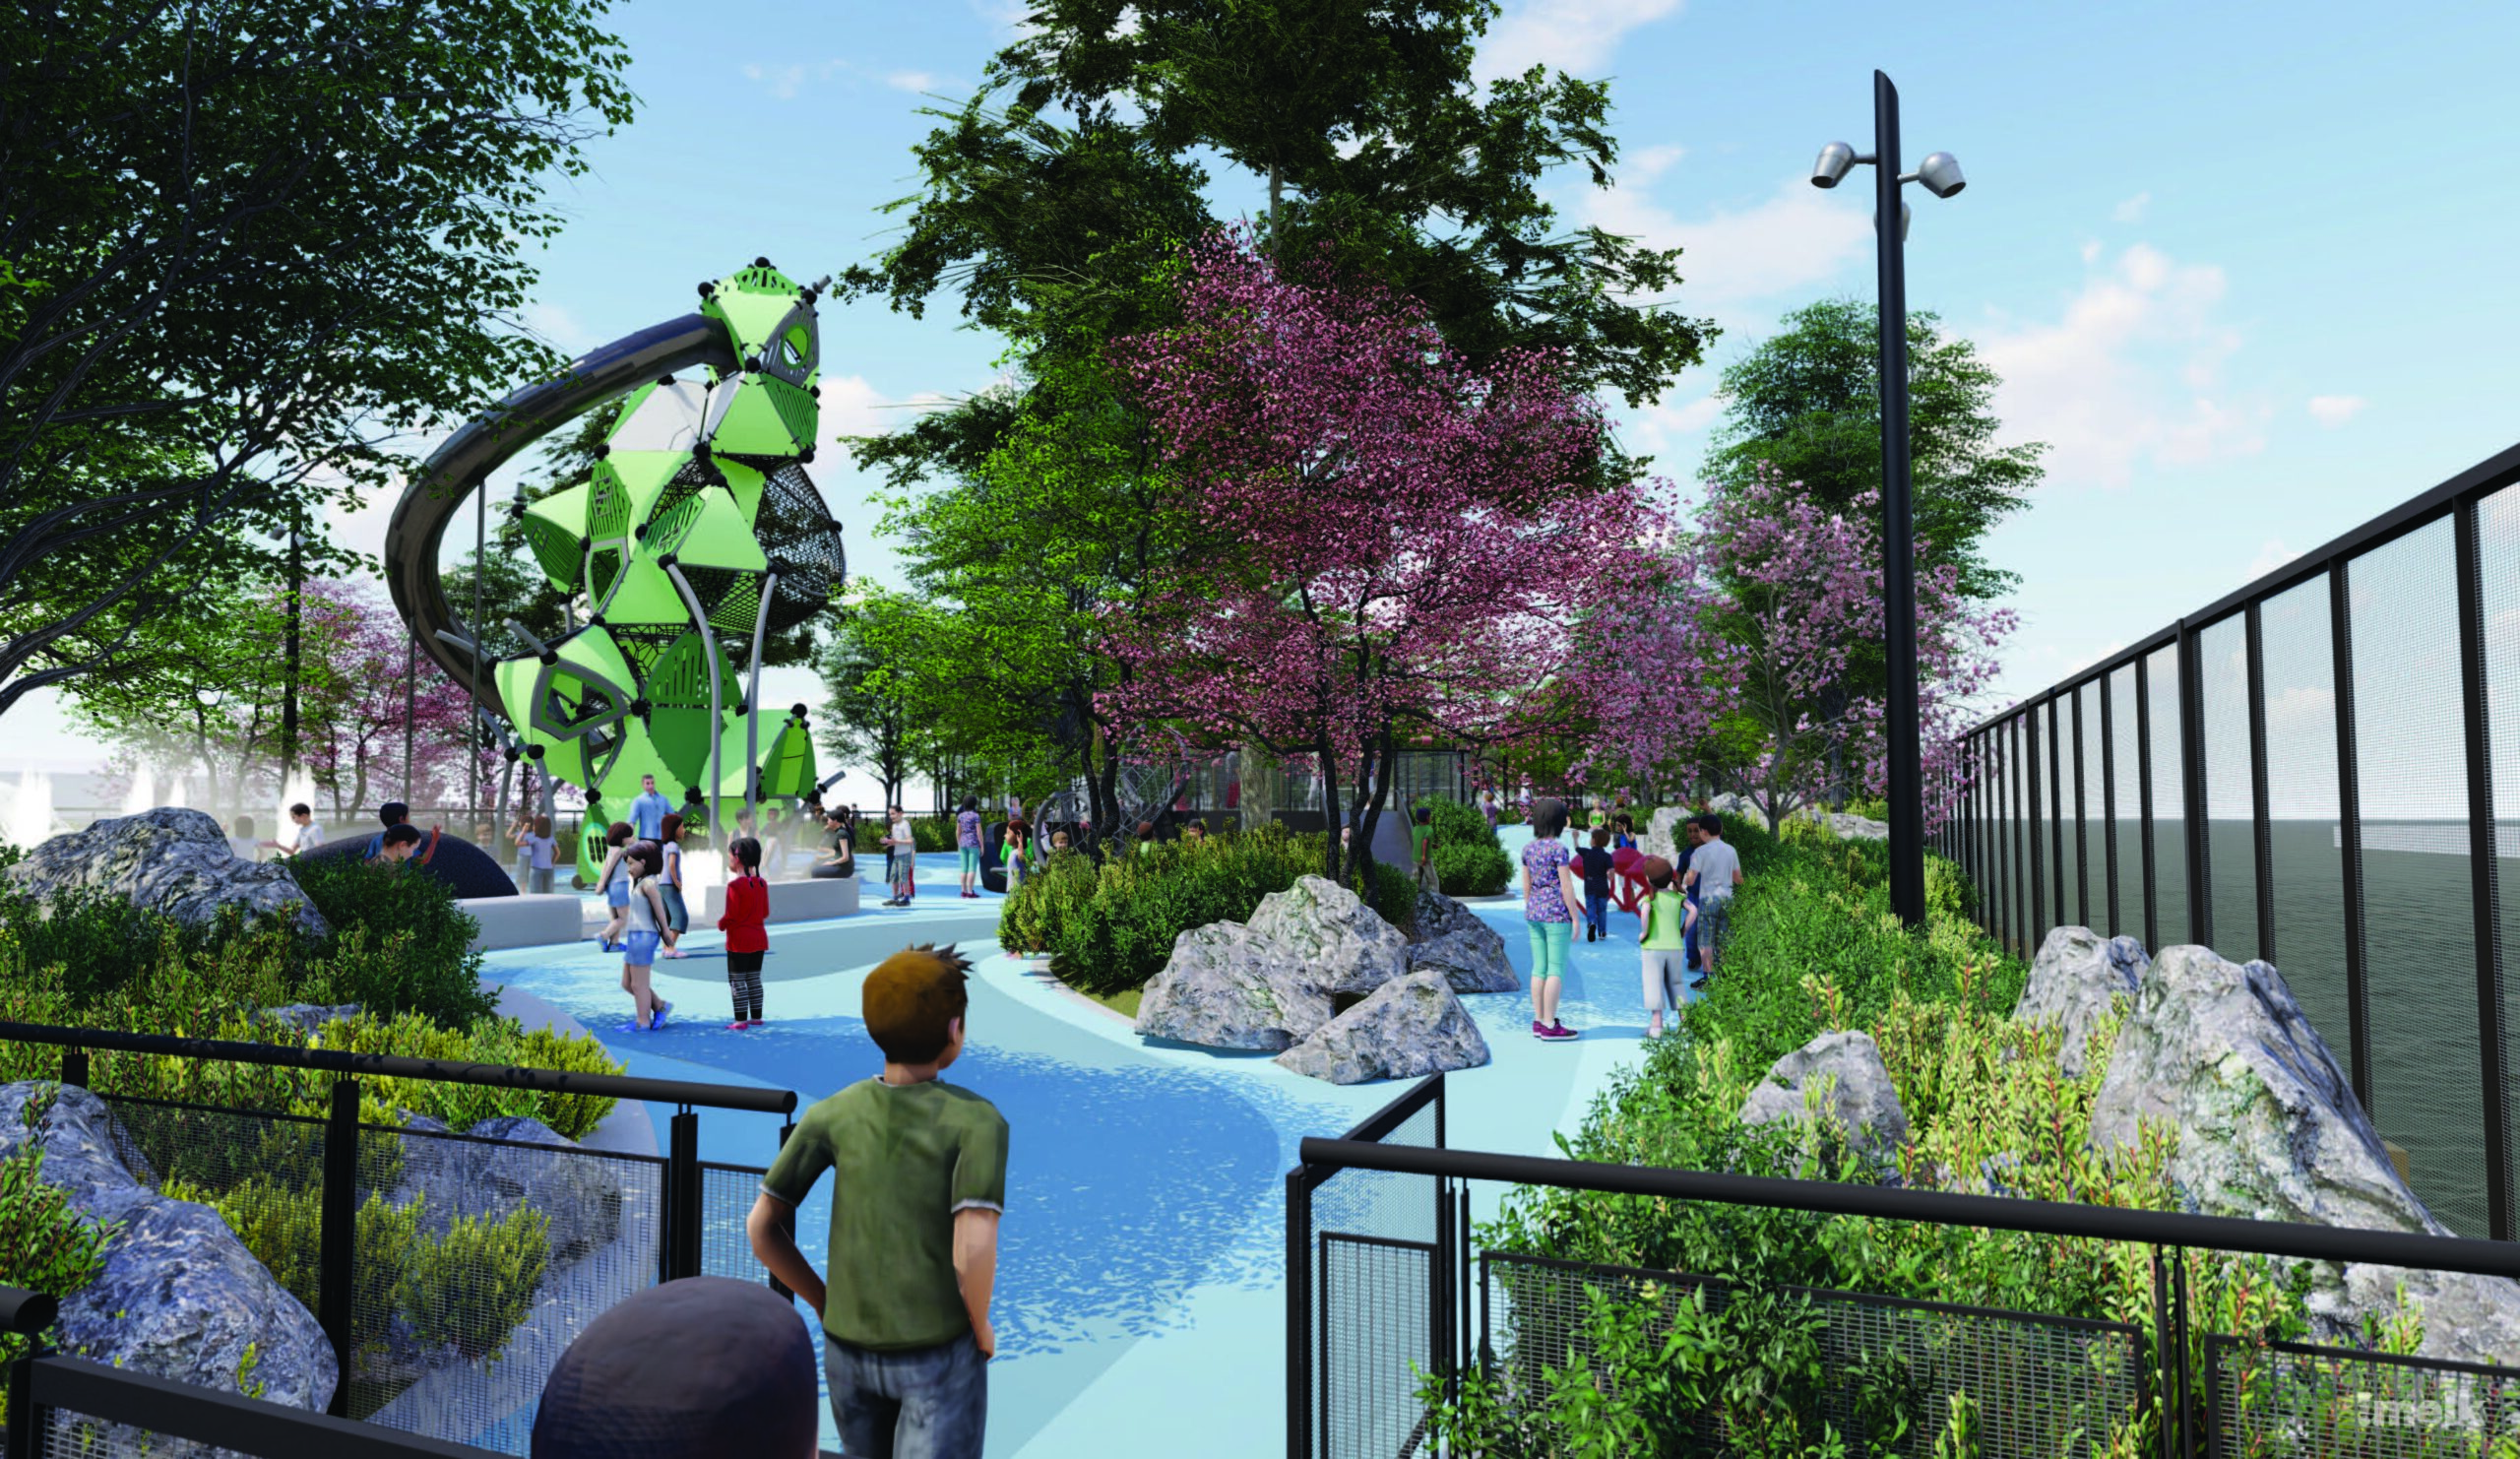 Pier 97 rendering of children's playground